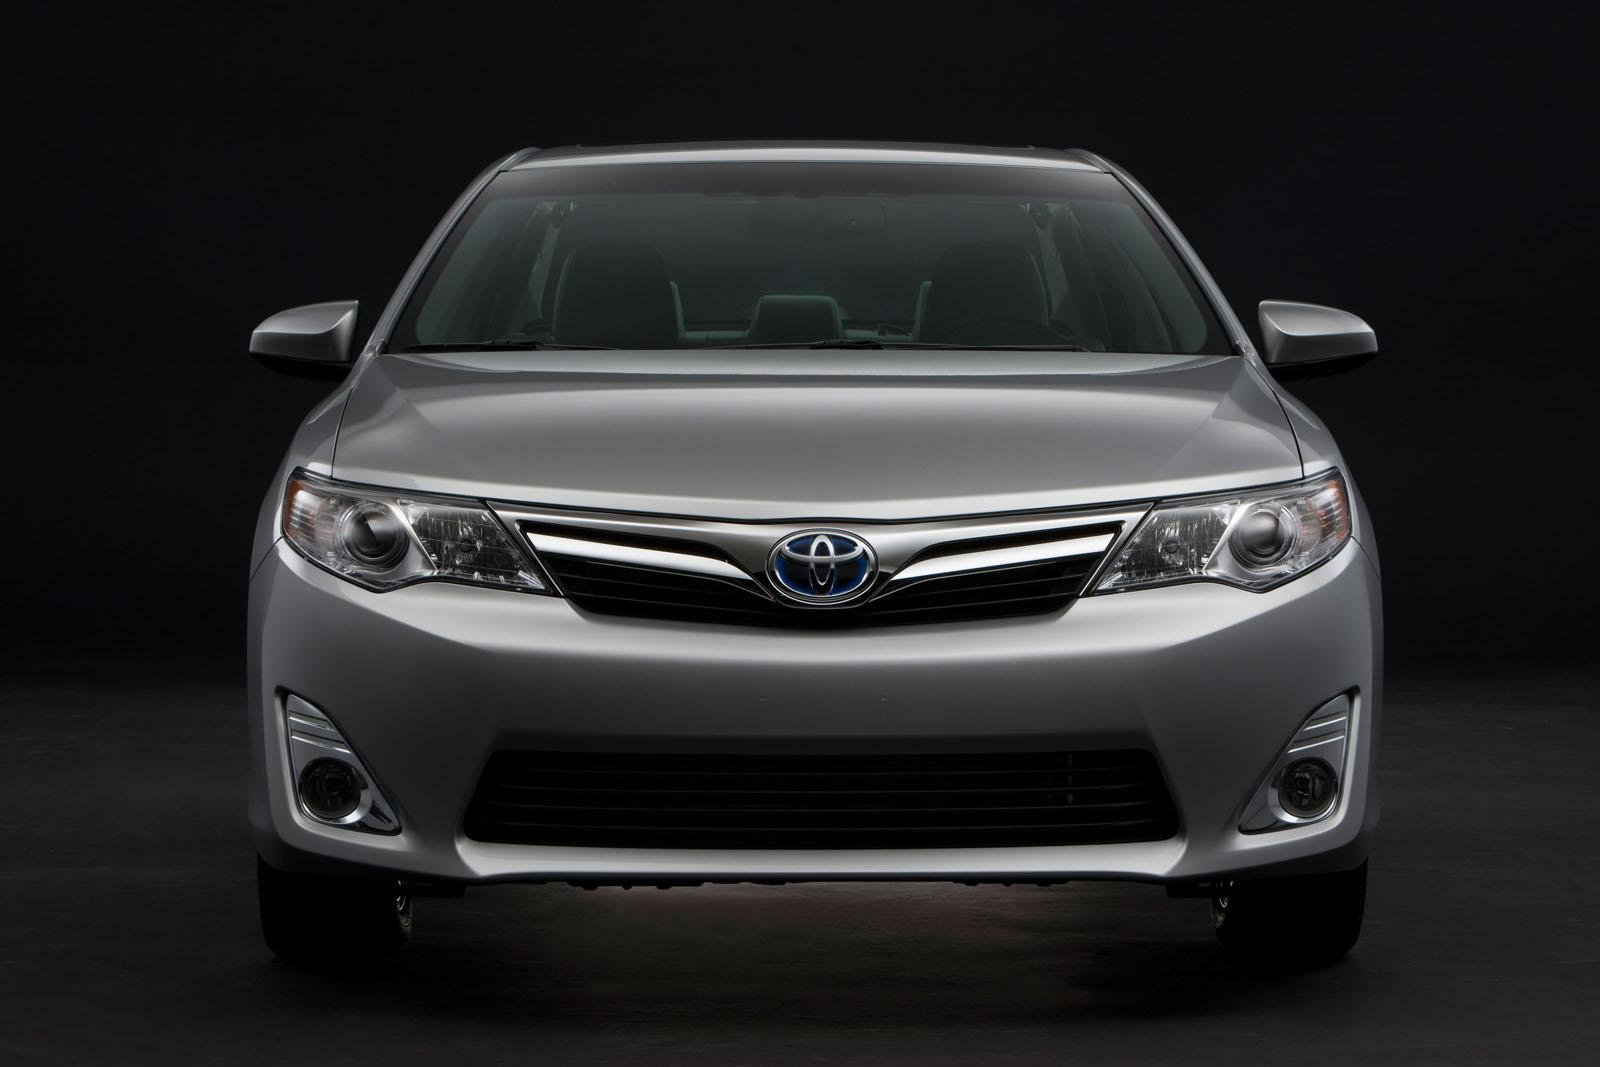 2012 Toyota Camry Hybrid1 Toyota developing a new turbocharged engine